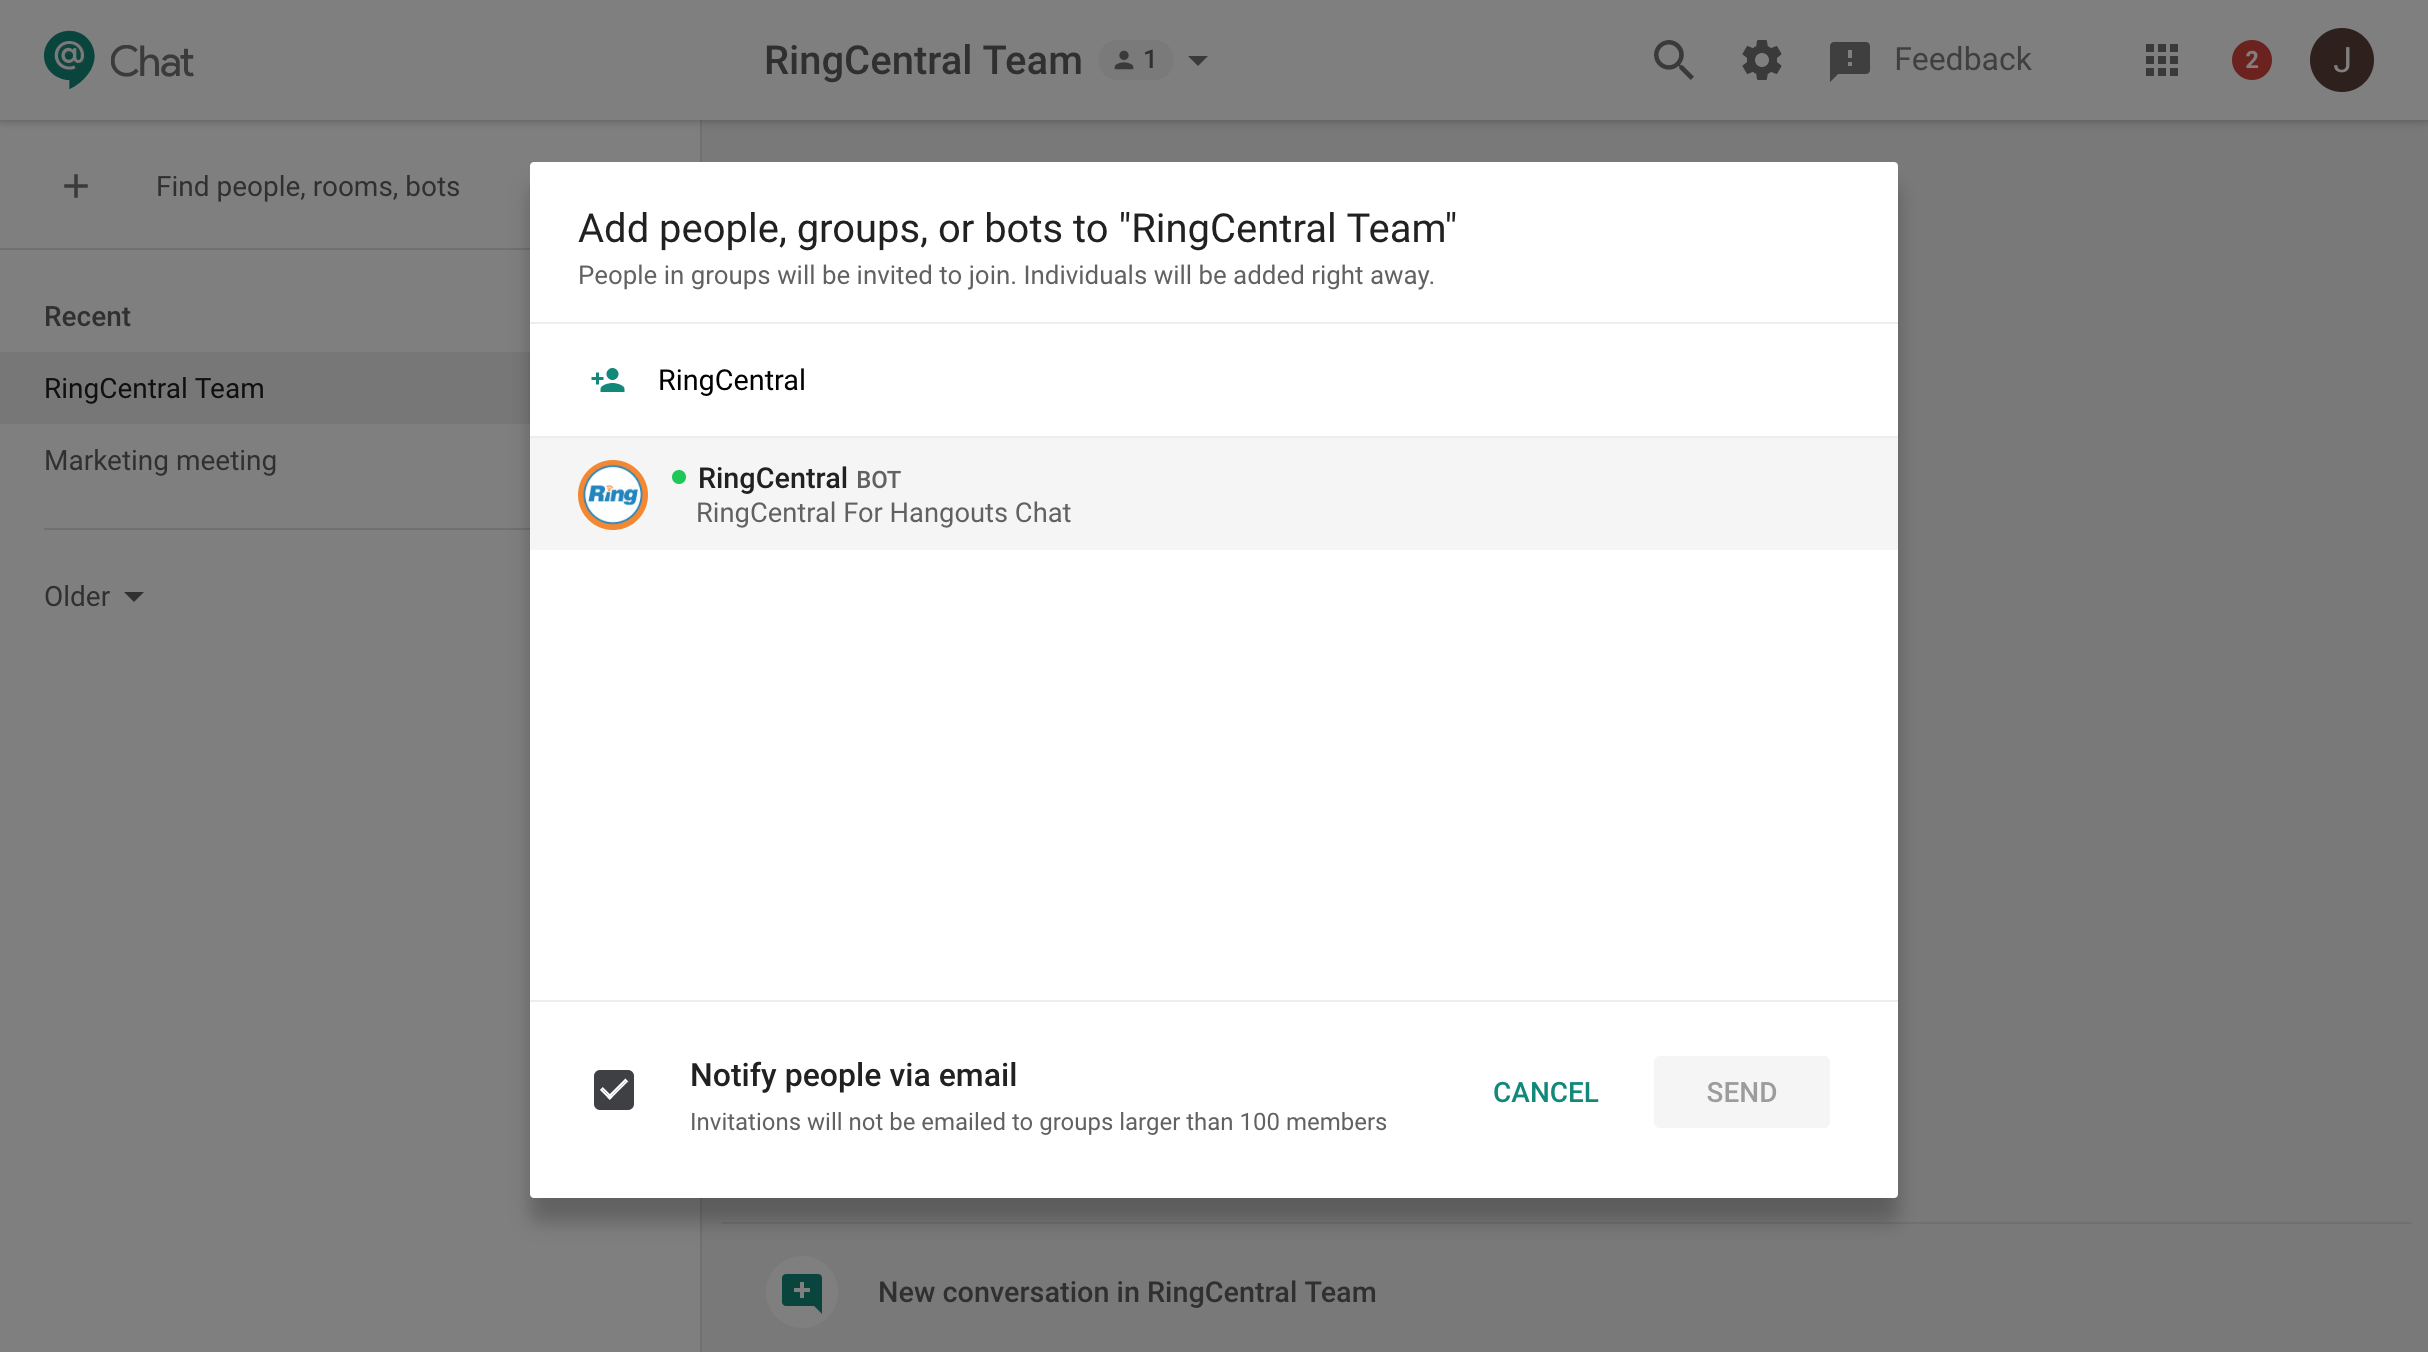 Google Hangouts Chat App Integration for RingCentral